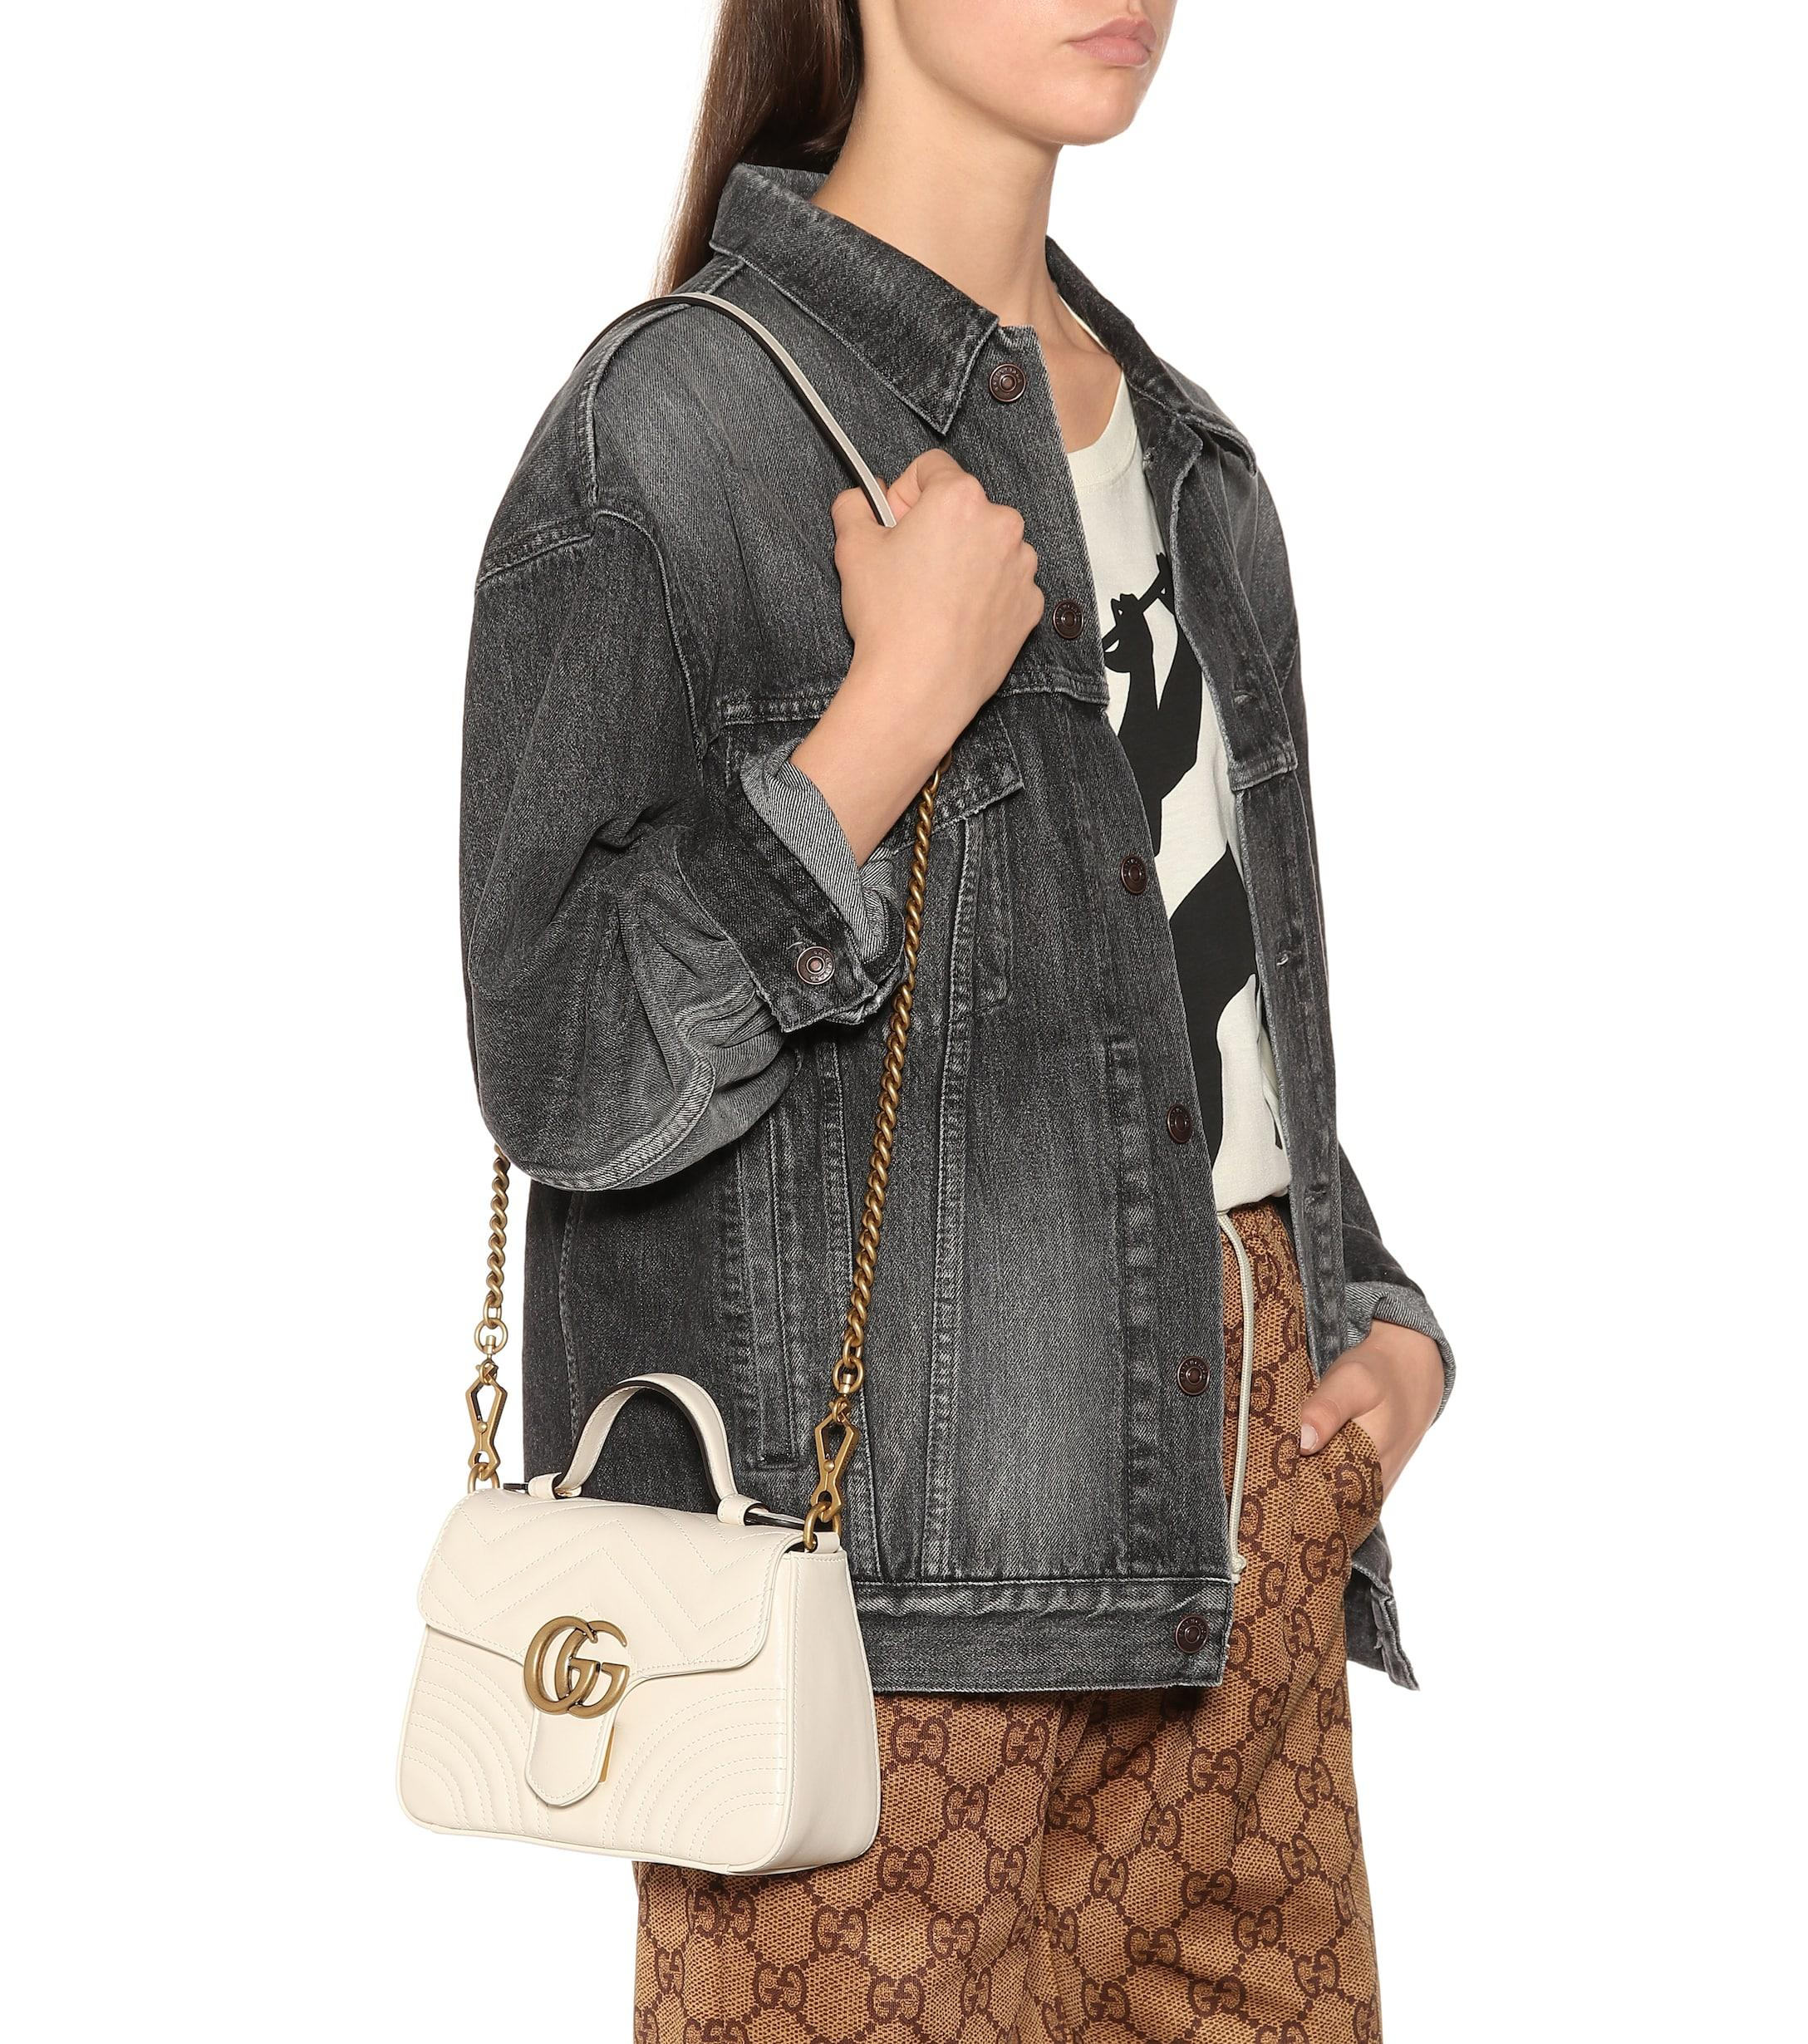 b66e68294616 Gucci - White Gg Marmont Mini Quilted Leather Shoulder Bag - Lyst. View  fullscreen